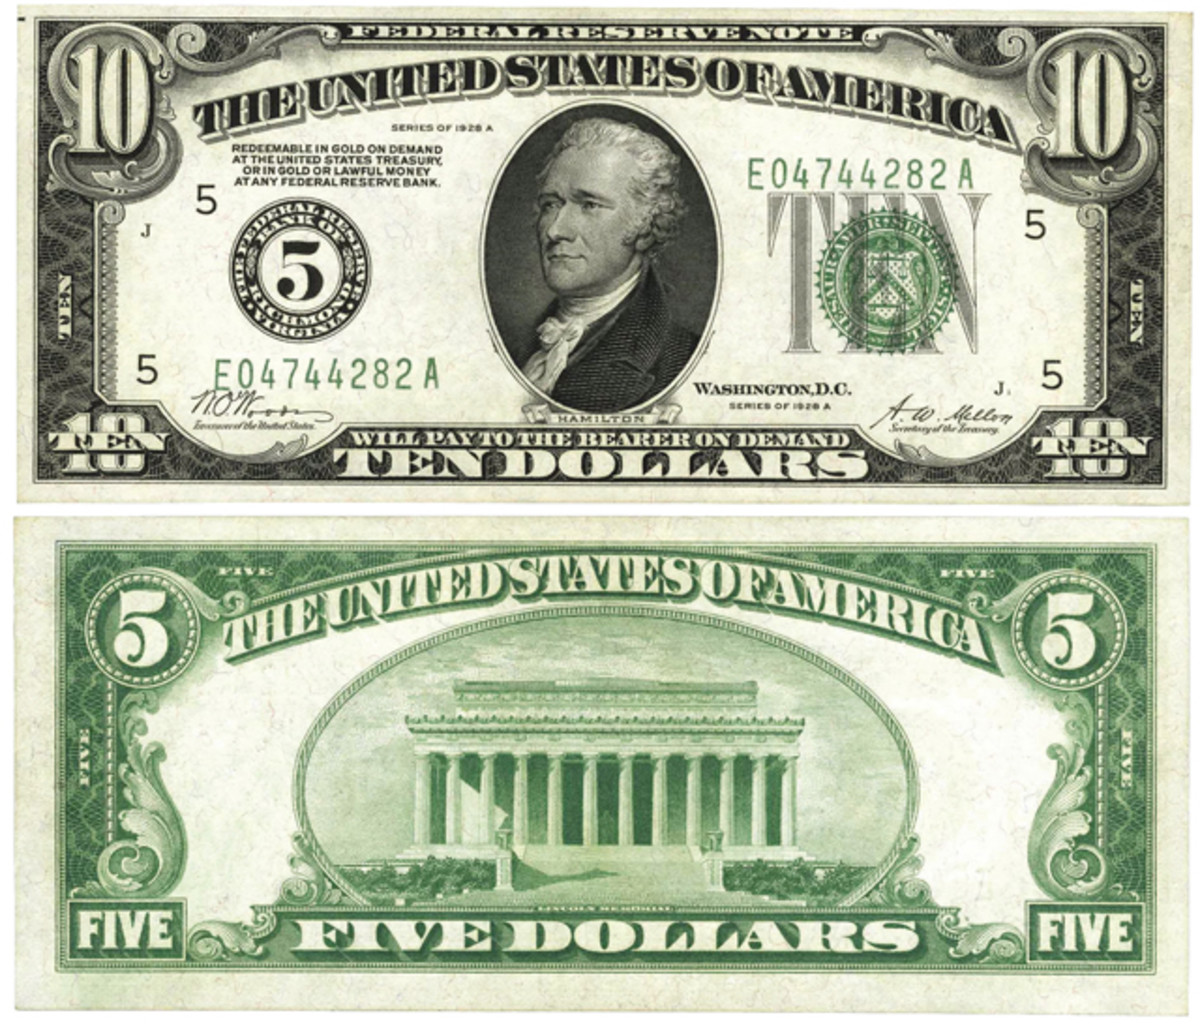 Six $10/$5 double denomination notes including this one were found at the Peoples Savings Bank and Trust Company of Wilmington, N.C., and hit the news in January 1932.